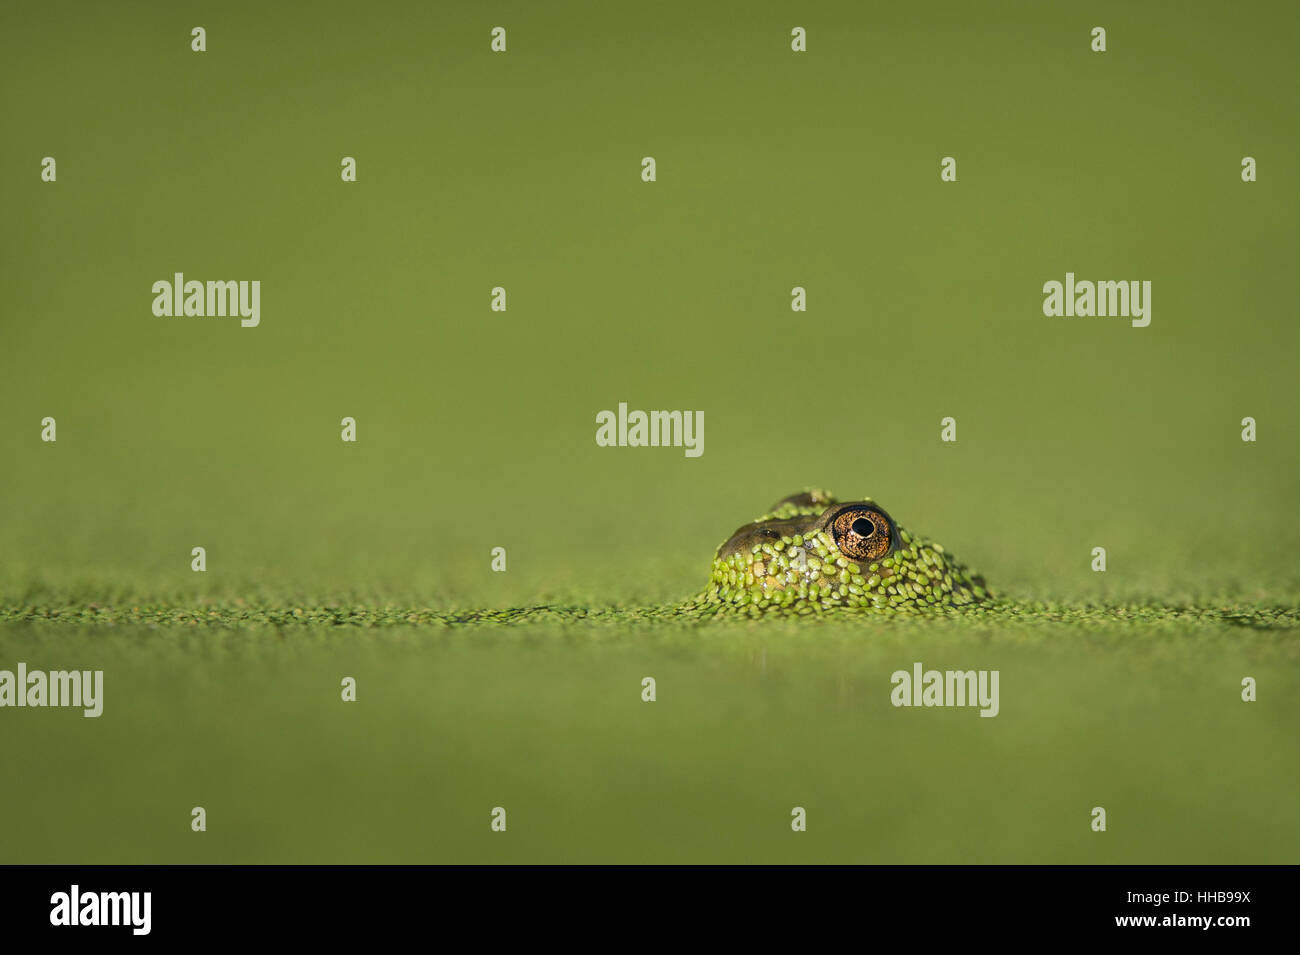 A small frog surfaced through the bright green duckweed to reveal its large eye. - Stock Image